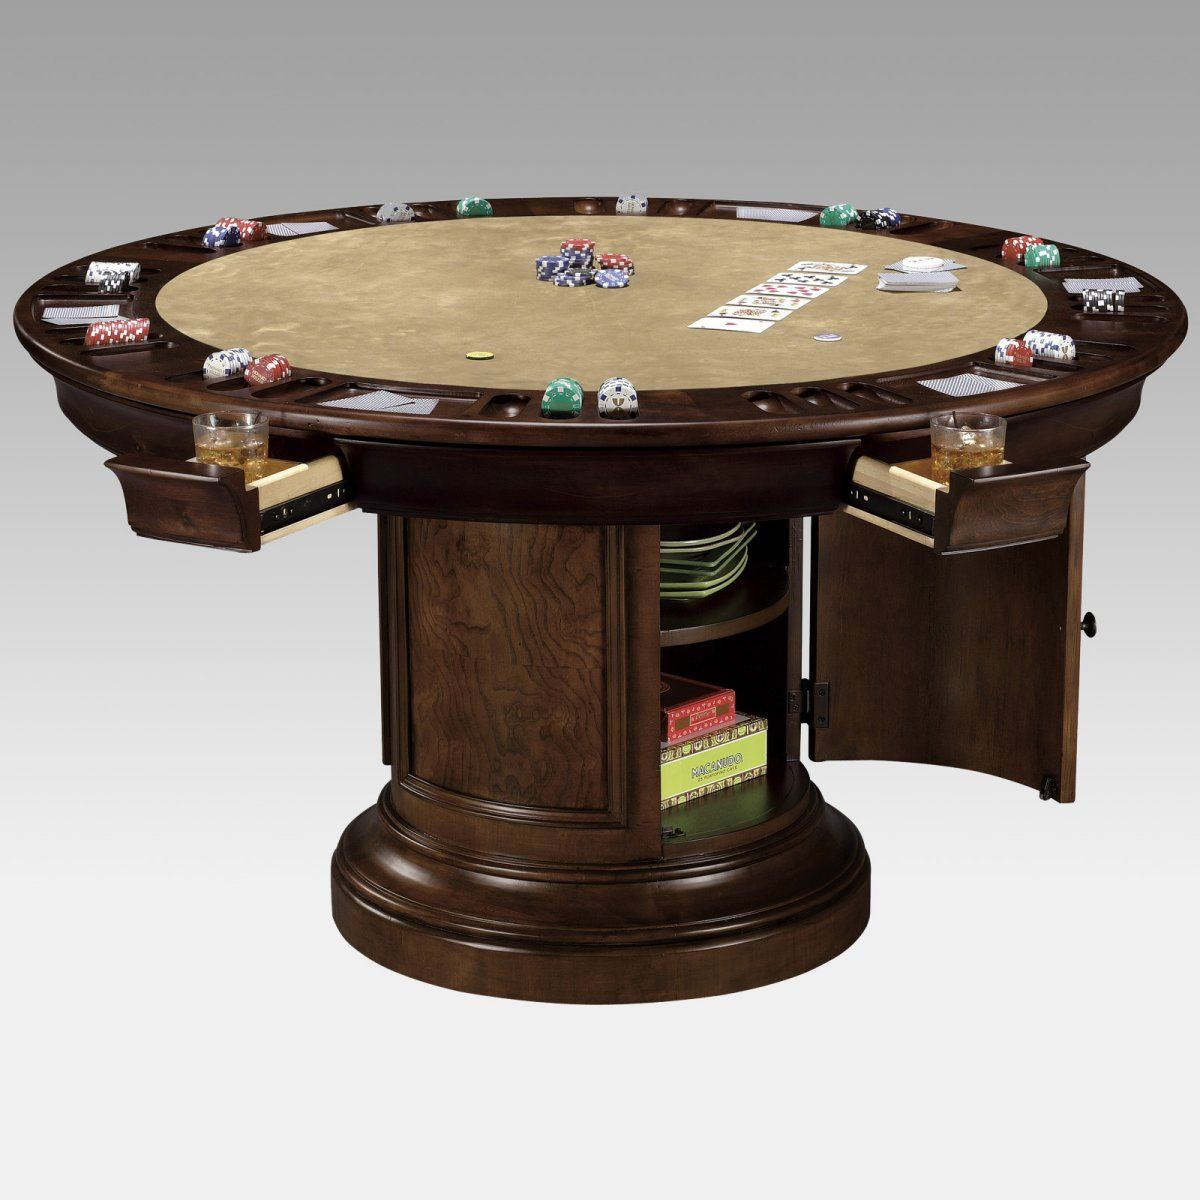 Round Dining Table That Converts To Game Table Use Furniture Sliding Pads To Easily Move It Around The Formal D Modern Game Tables Card Game Table Poker Table